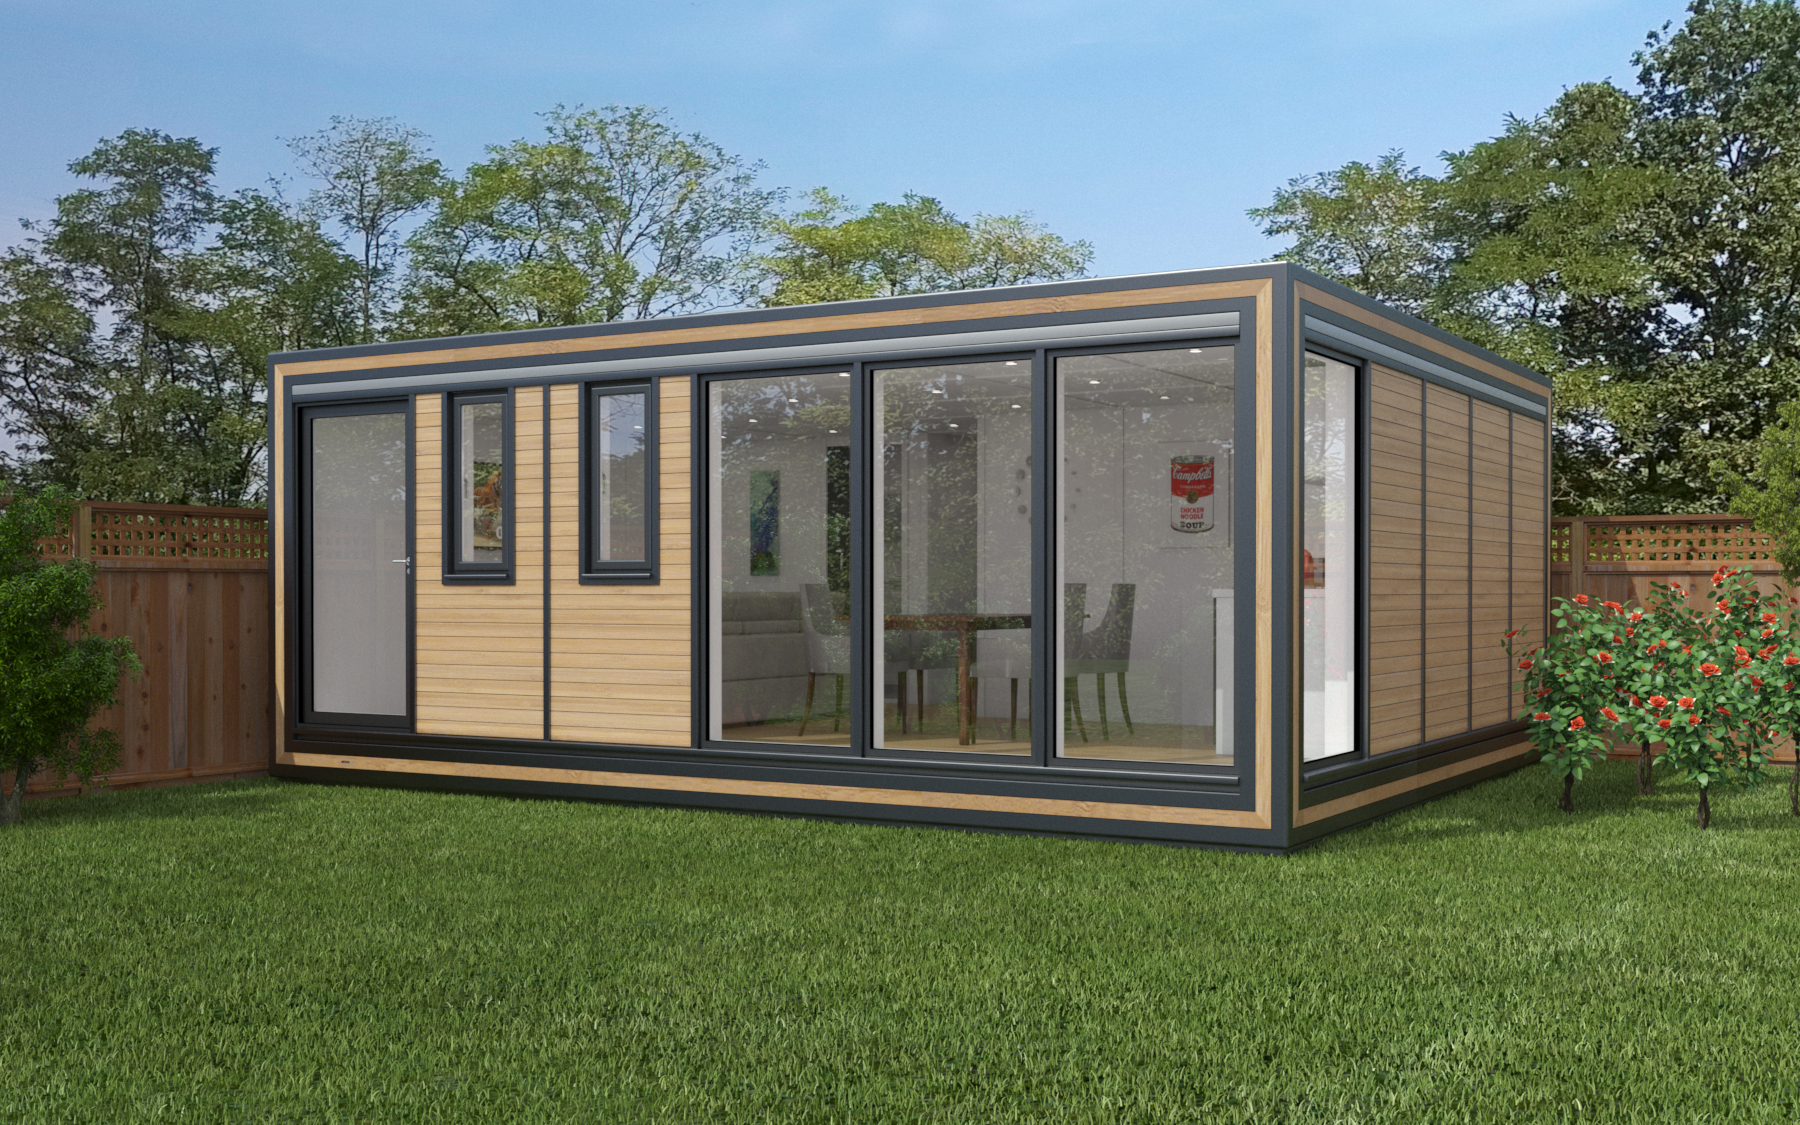 ZEDBOX 650  (6 x 5)  Internal Size: 6401 x 5330  External Size: 6871 x 5800  Bed Options: Single or Double  Kitchen Options: Micro Kitchen or Kitchen  Wet Room Options: Yes  Portico: No  Price:  £46,000    Optional Extras    Request Zedbox Catalogue